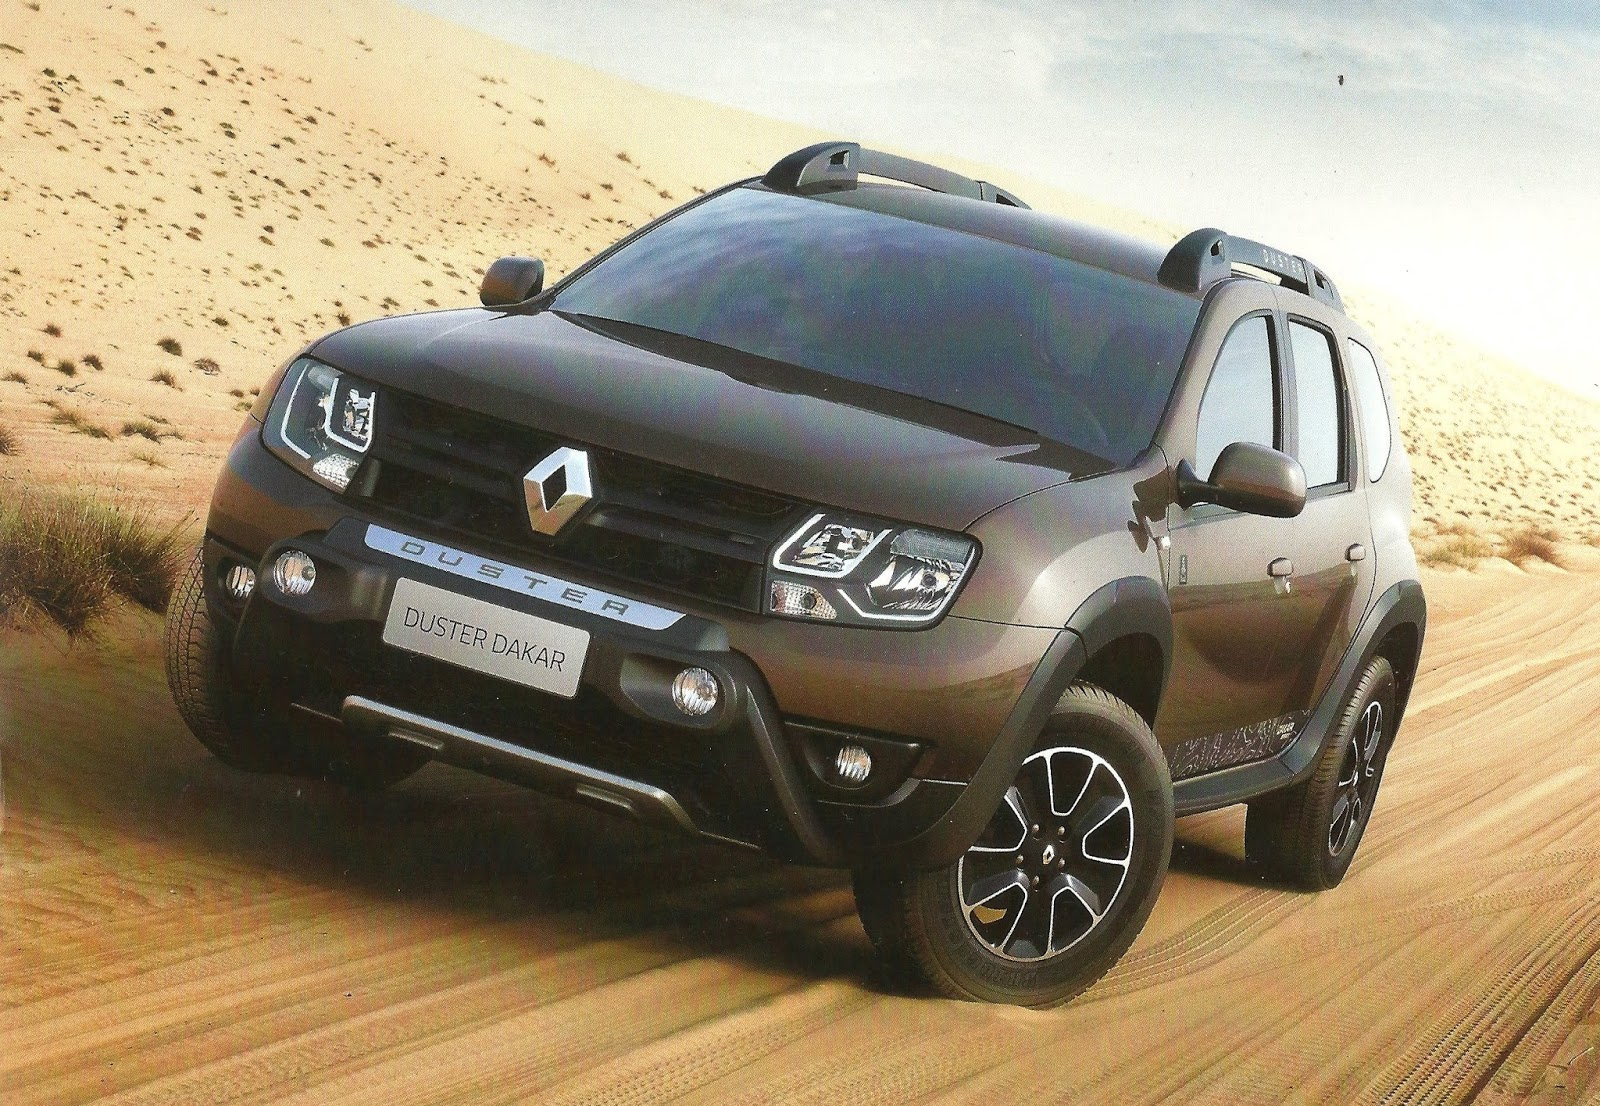 Dacia Duster Suv 2018 >> Renault Duster Dakar Edition to launch in Brazil this month